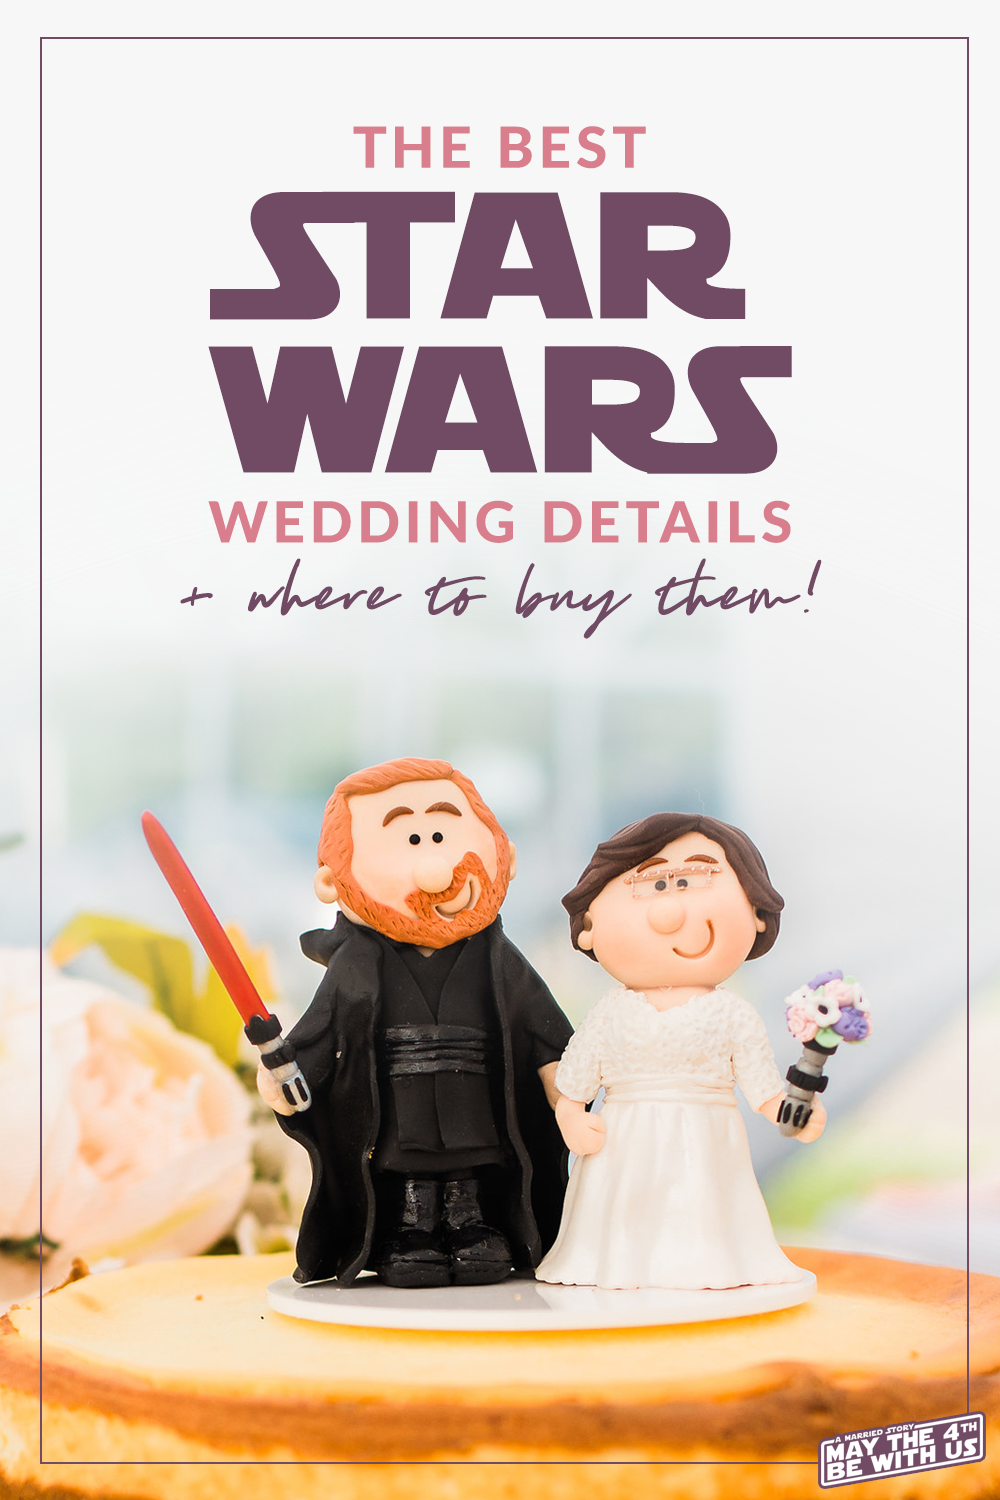 Star Wars Wedding Details and where to buy them